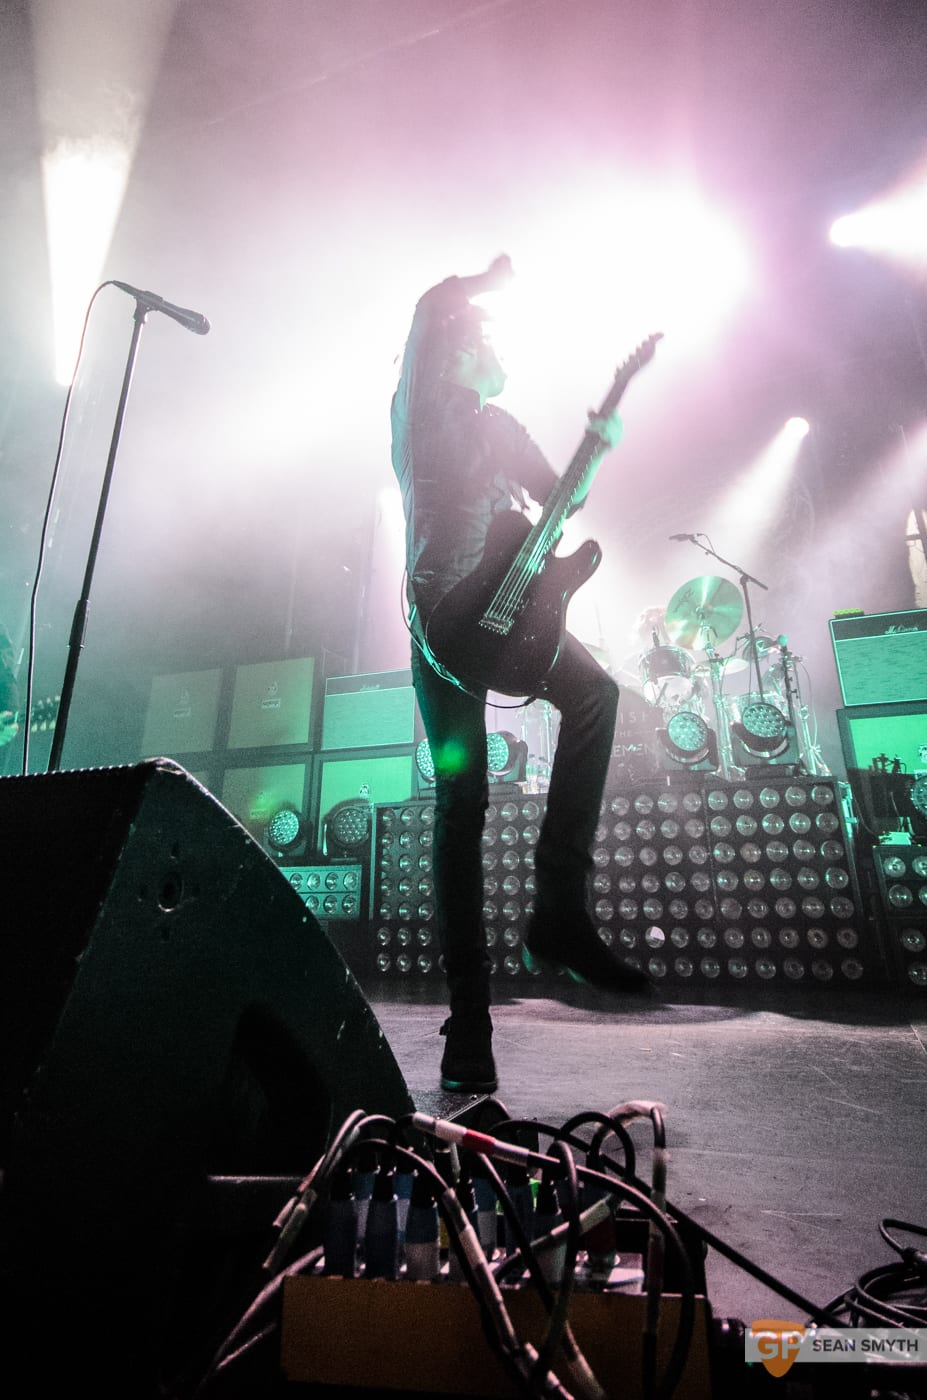 catfish-and-the-bottlemen-at-the-olympia-theatre-by-sean-smyth-20-11-16-26-of-27